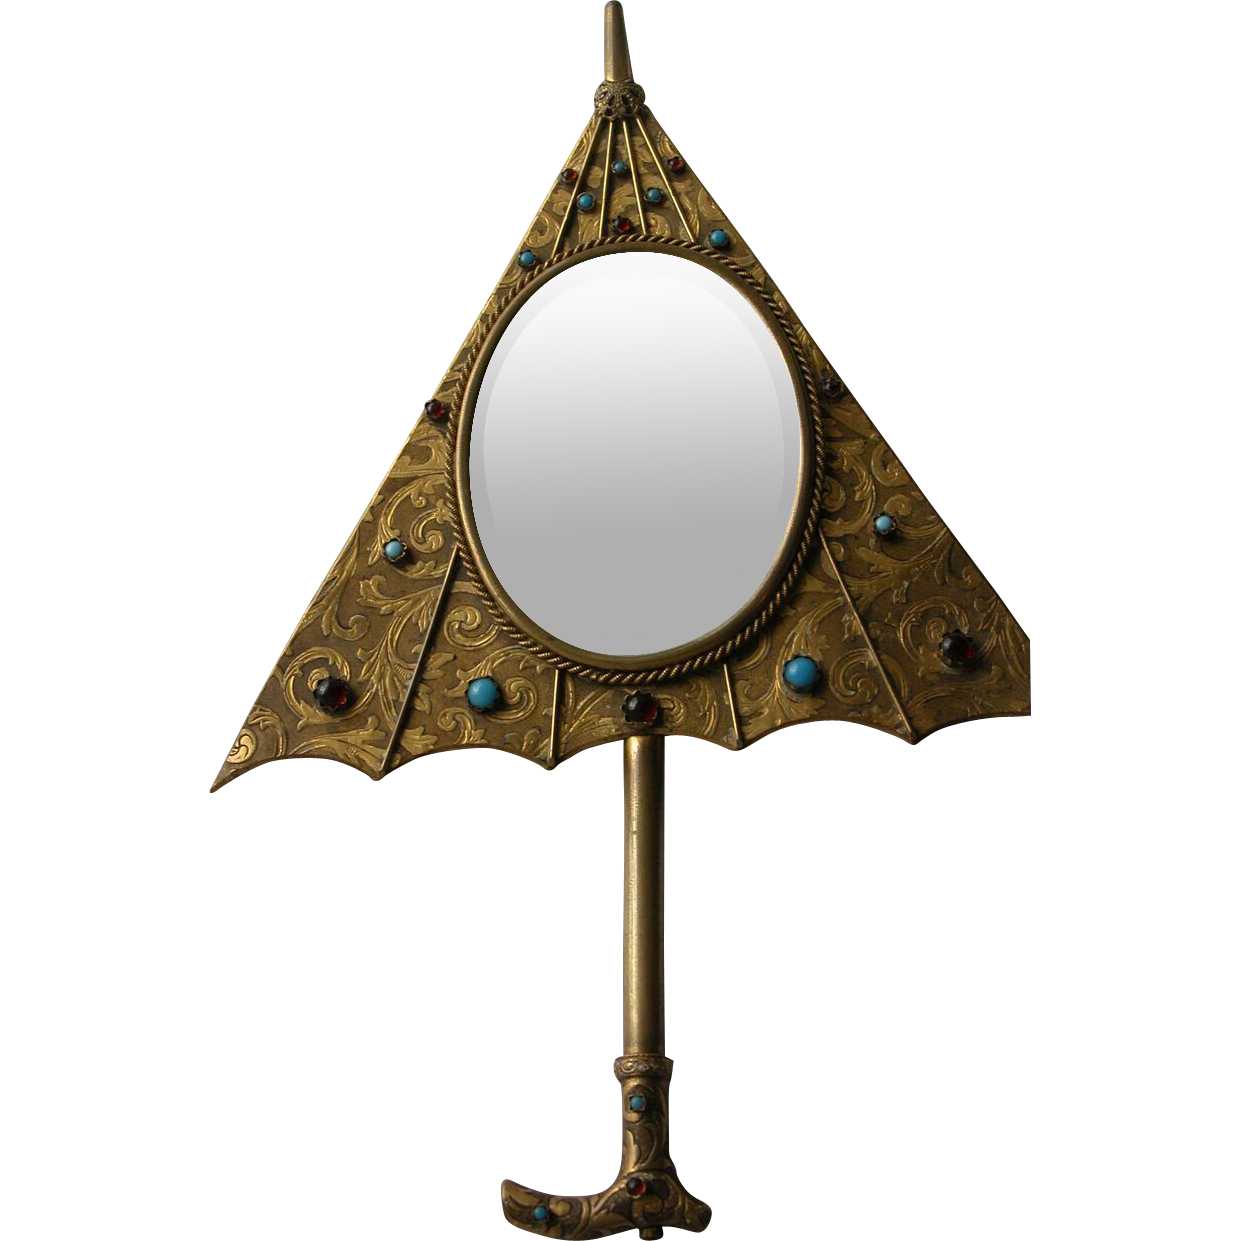 Jeweled Wall Mirror or Hand Mirror in Shape of an Umbrella